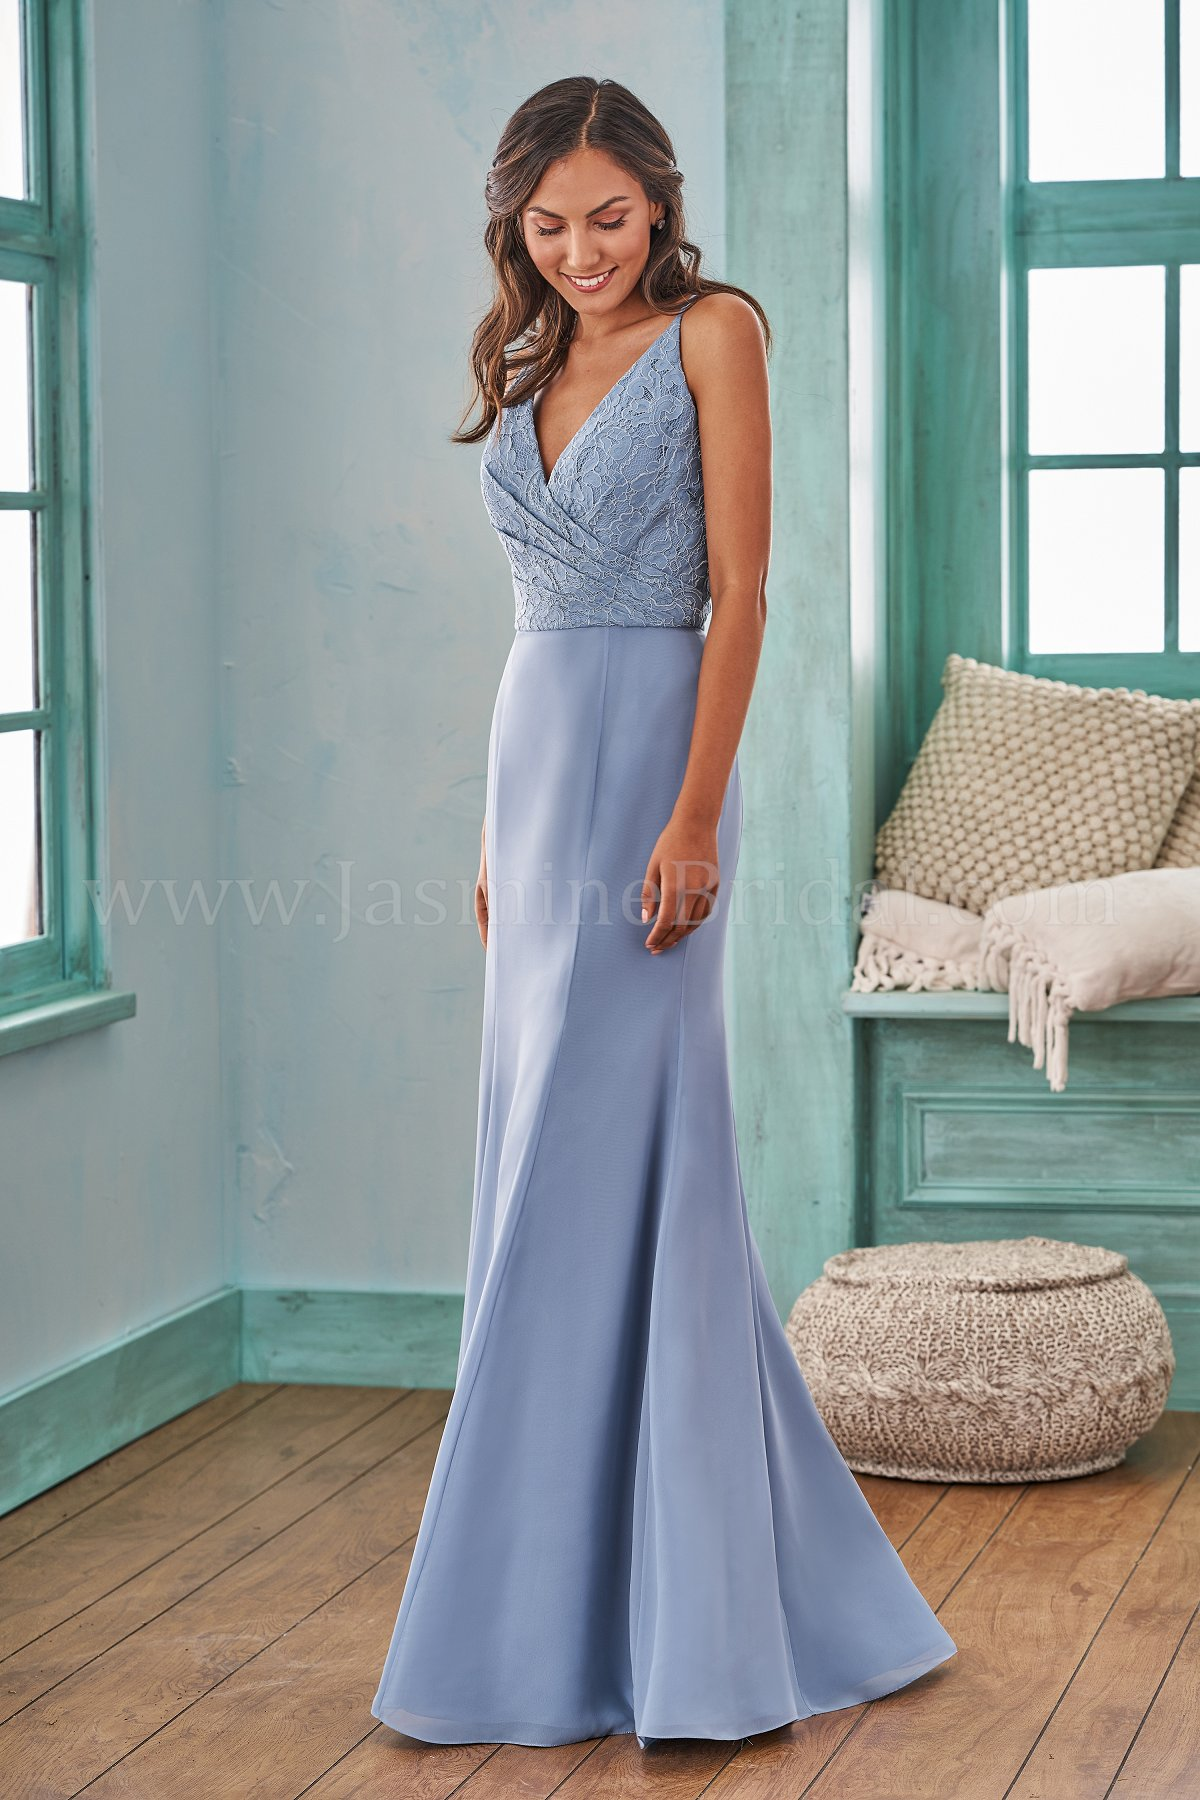 B203007 Long V-neck Fit and Flare Lace & Poly Chiffon Bridesmaid Dress